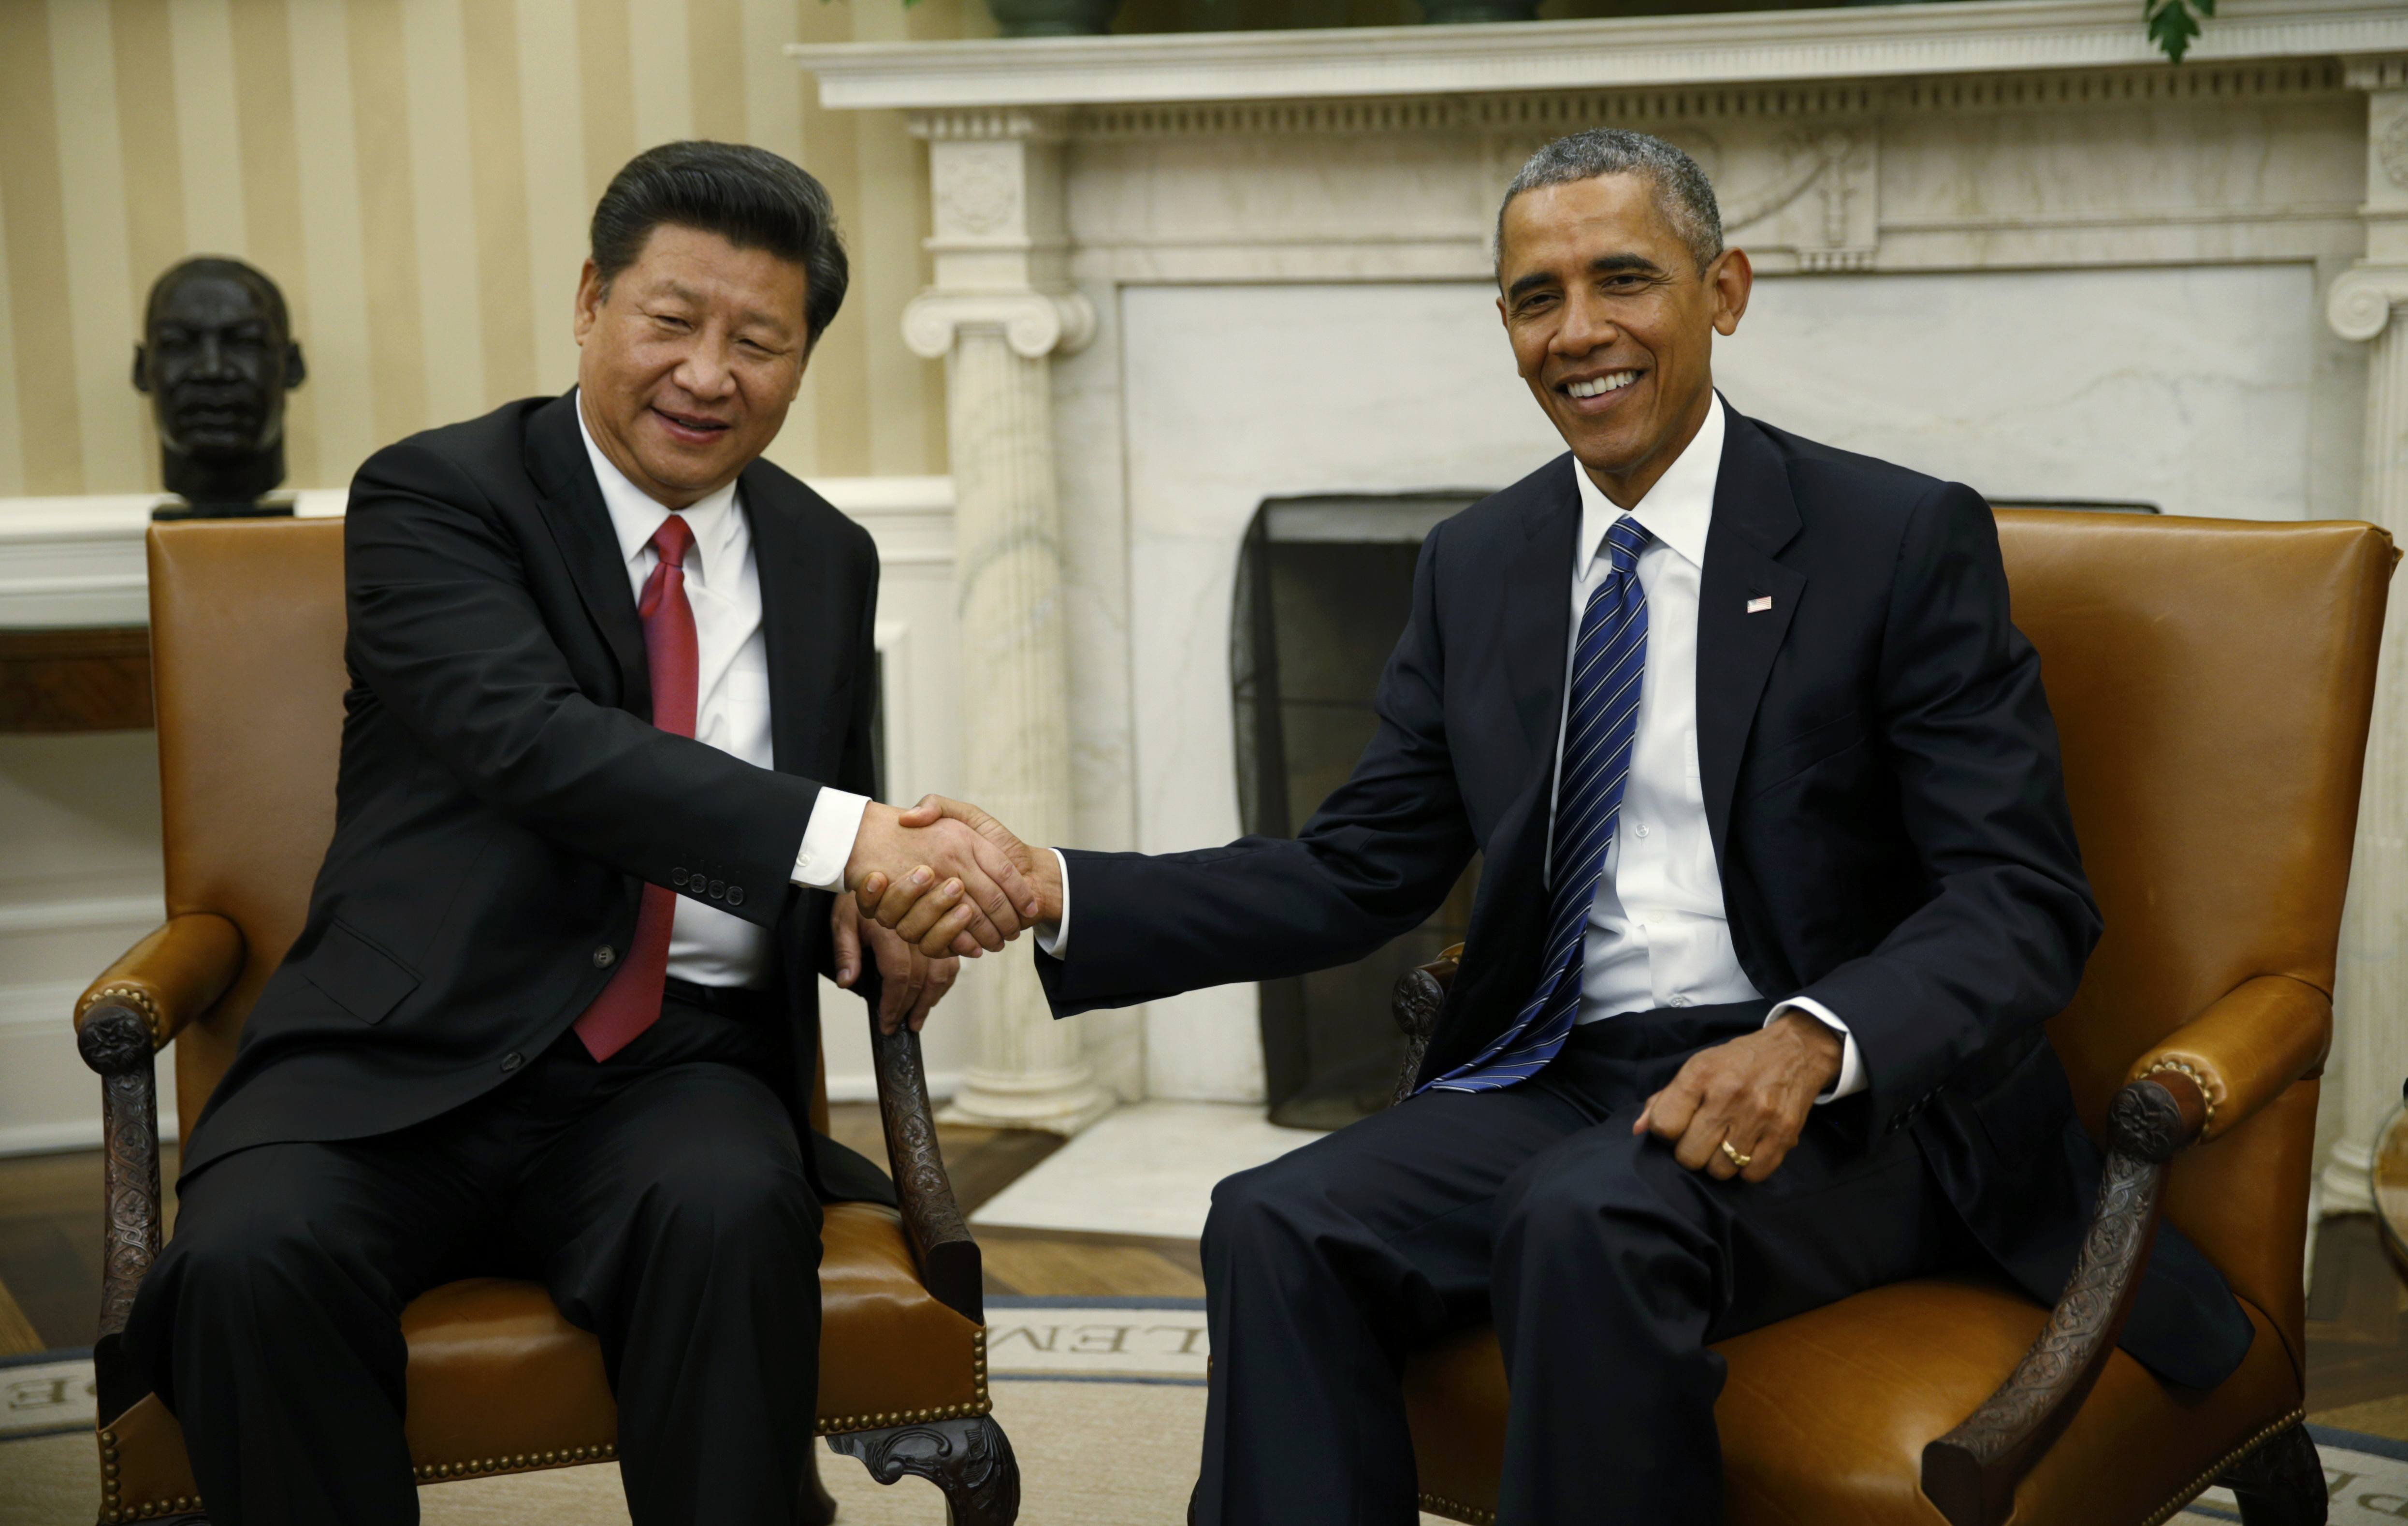 U.S. President Barack Obama (R) greets Chinese President Xi Jinping in the Oval Office of the White House in Washington September 25, 2015. REUTERS/Kevin Lamarque